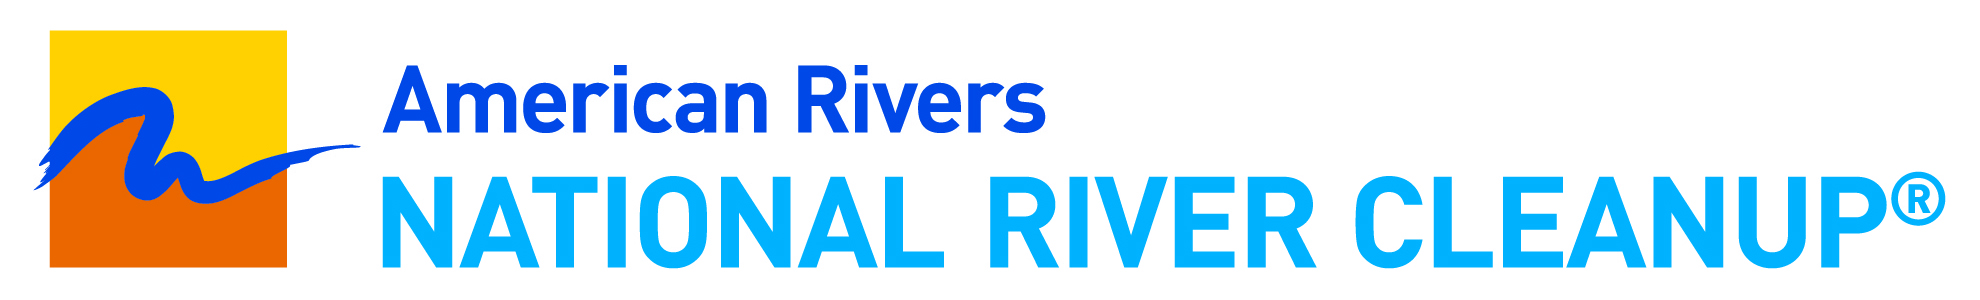 NationalRiverCleanupLogo_CYMK.jpg